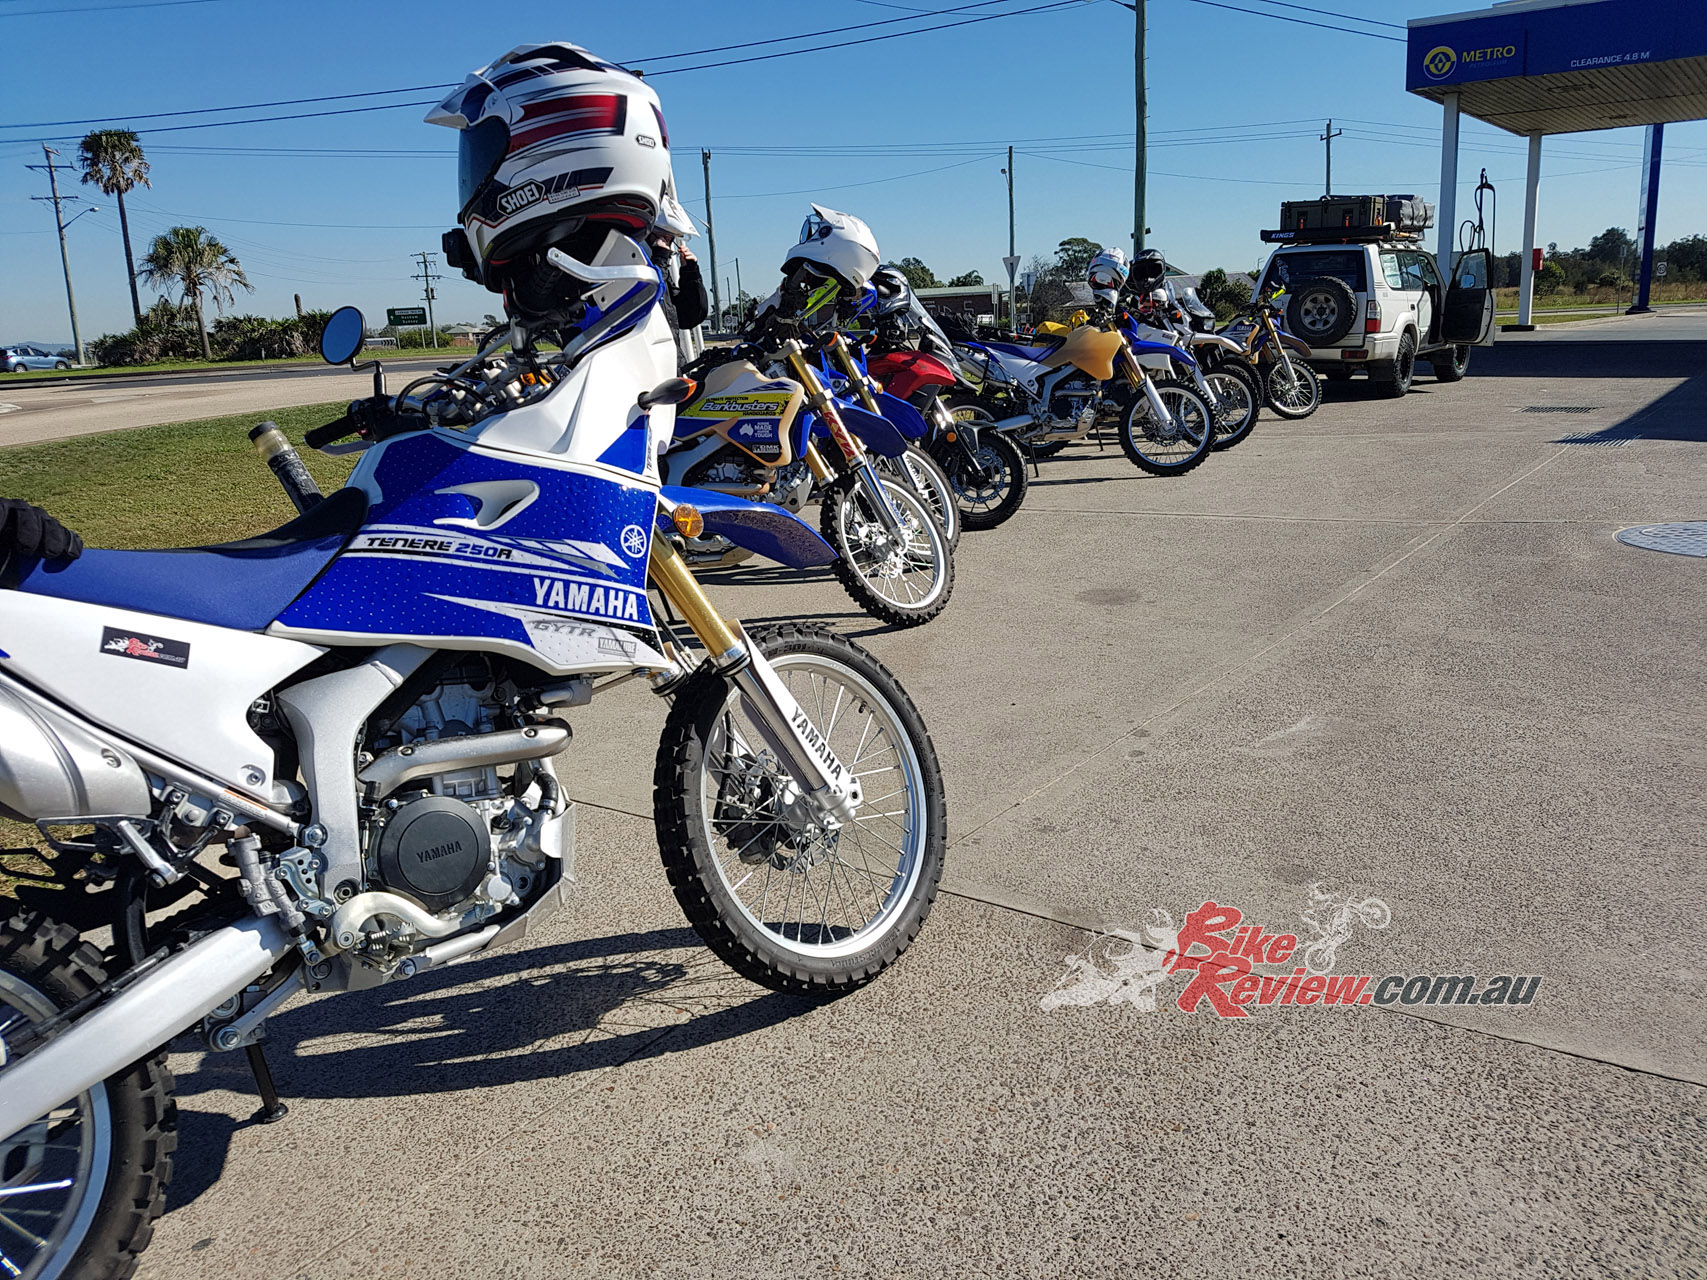 The WR250R is good on the road. This is near Stockton, after a 200km road ride that was comfortable and too easy.